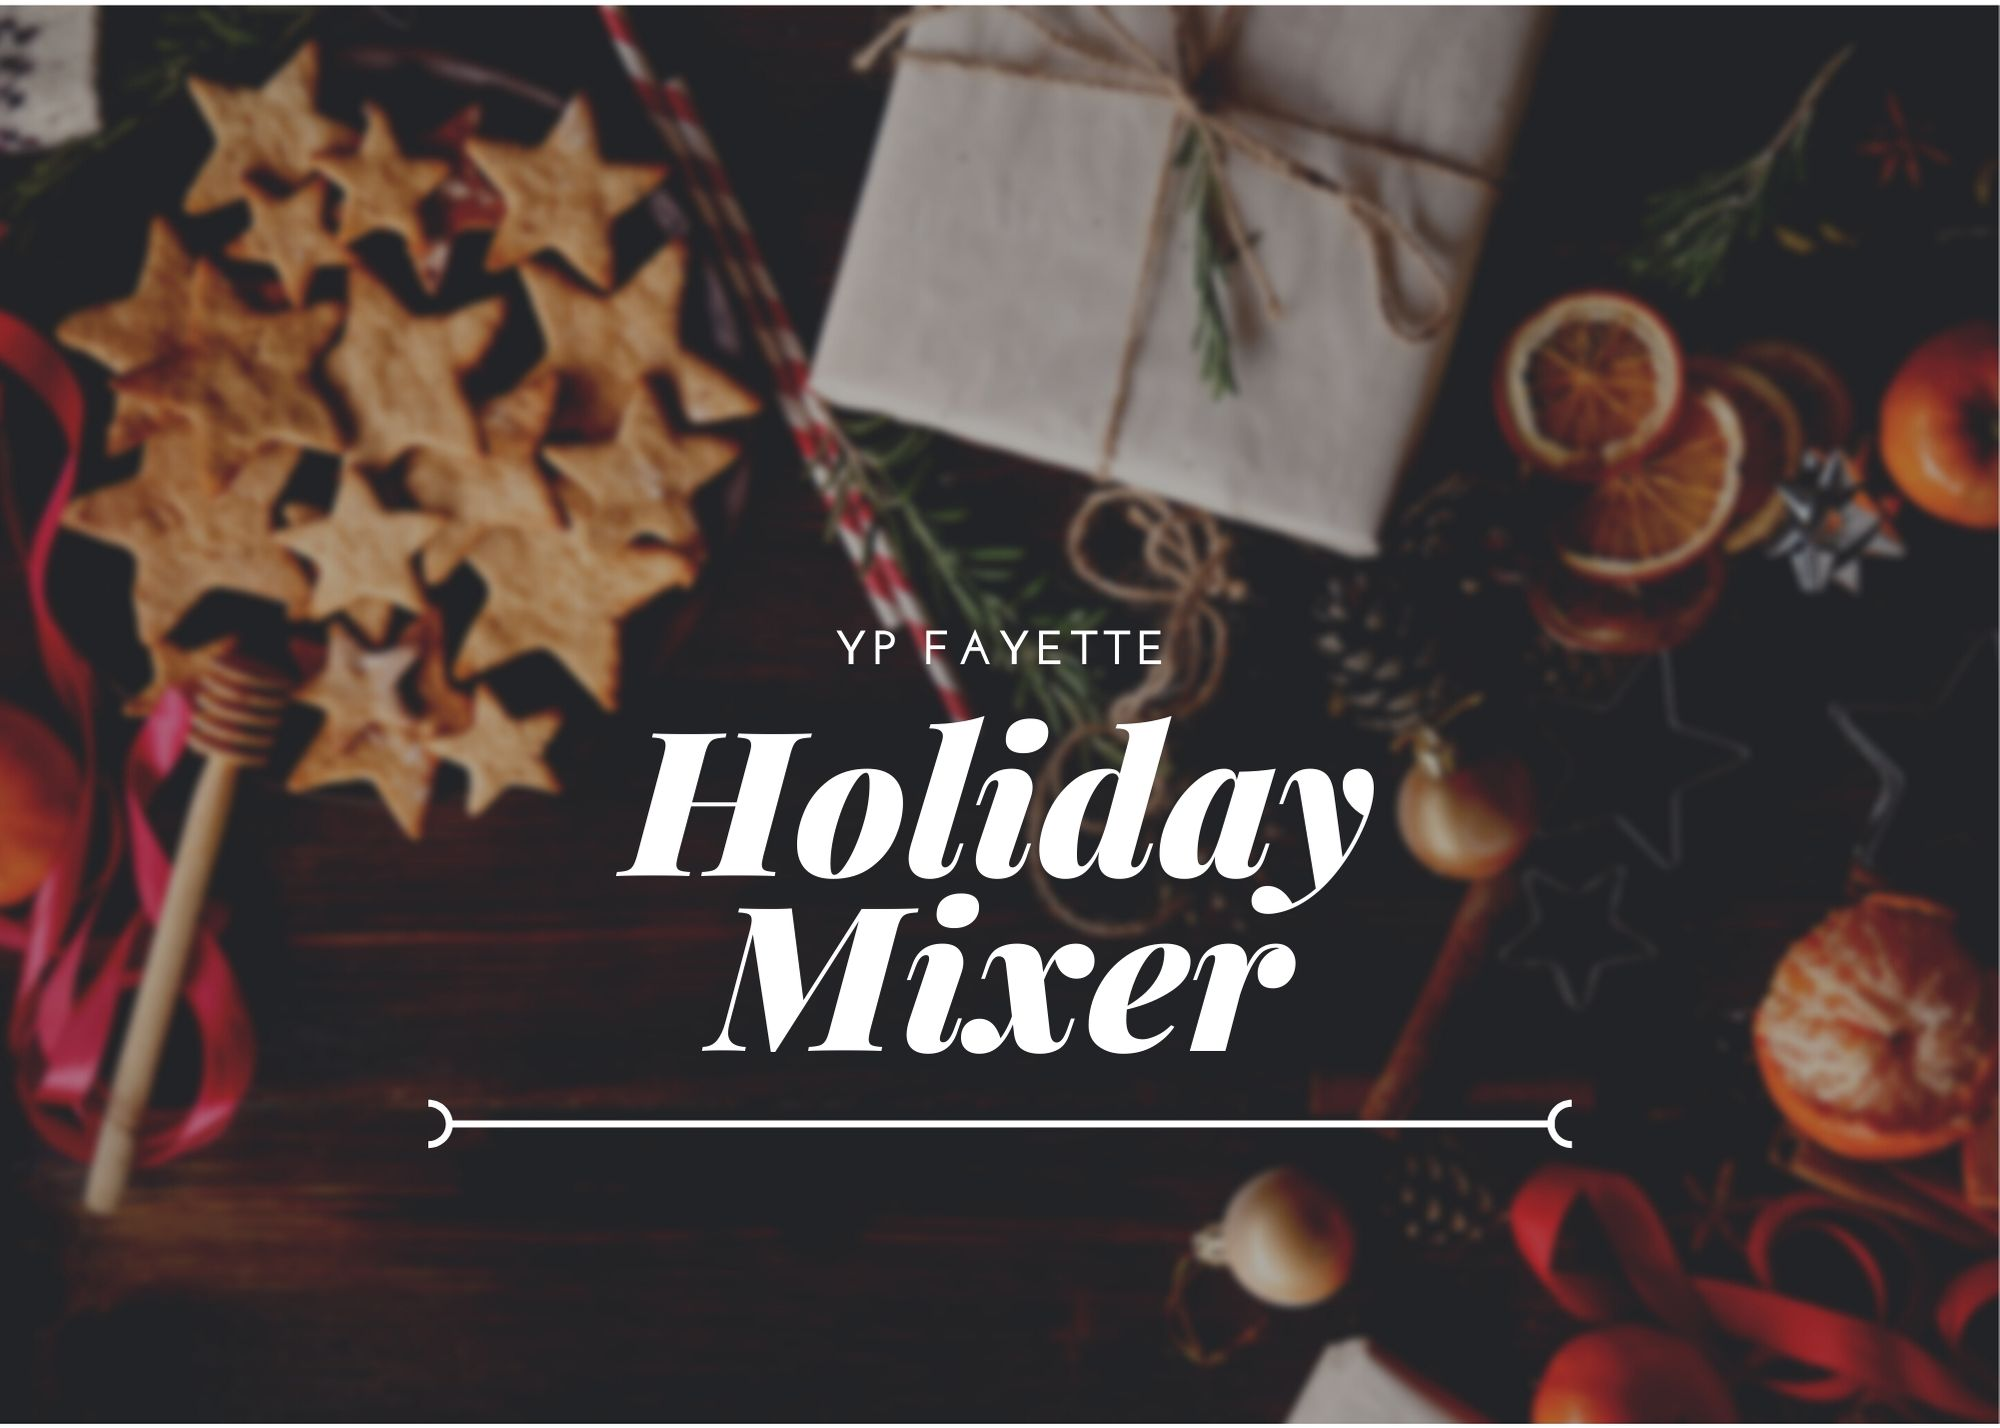 YP Fayette Holiday Mixer